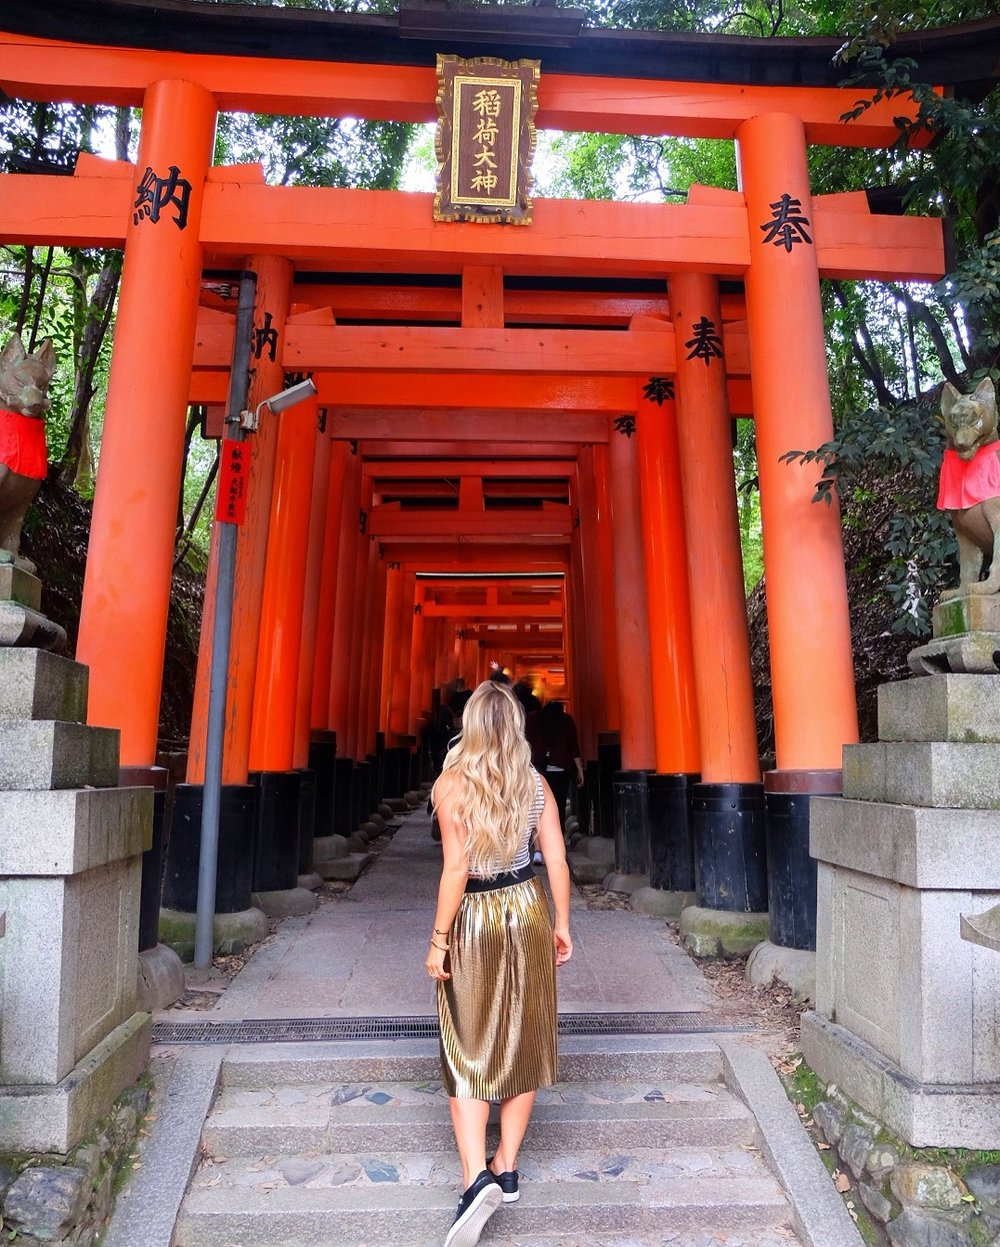 The endless torii gates at the Fushimi-Inari Shrine